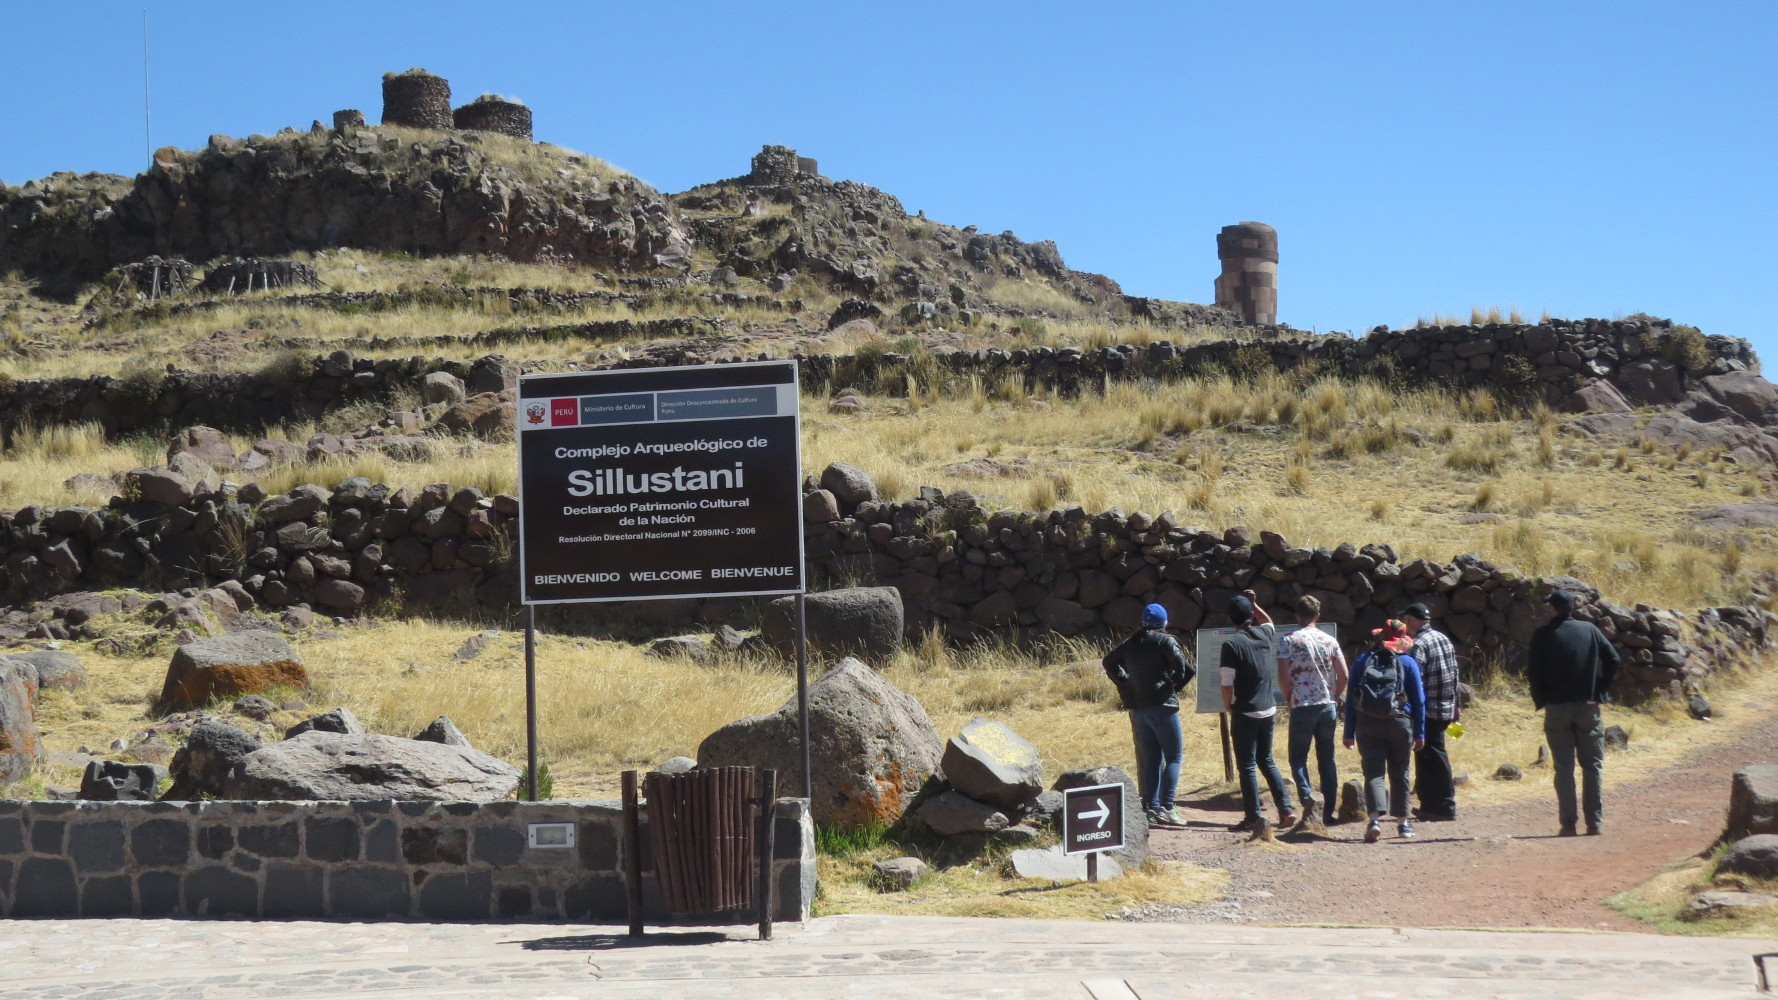 On weekends we took field trips. The first one was to Sillustani, an Inca Period chullpa, or burial tomb site.